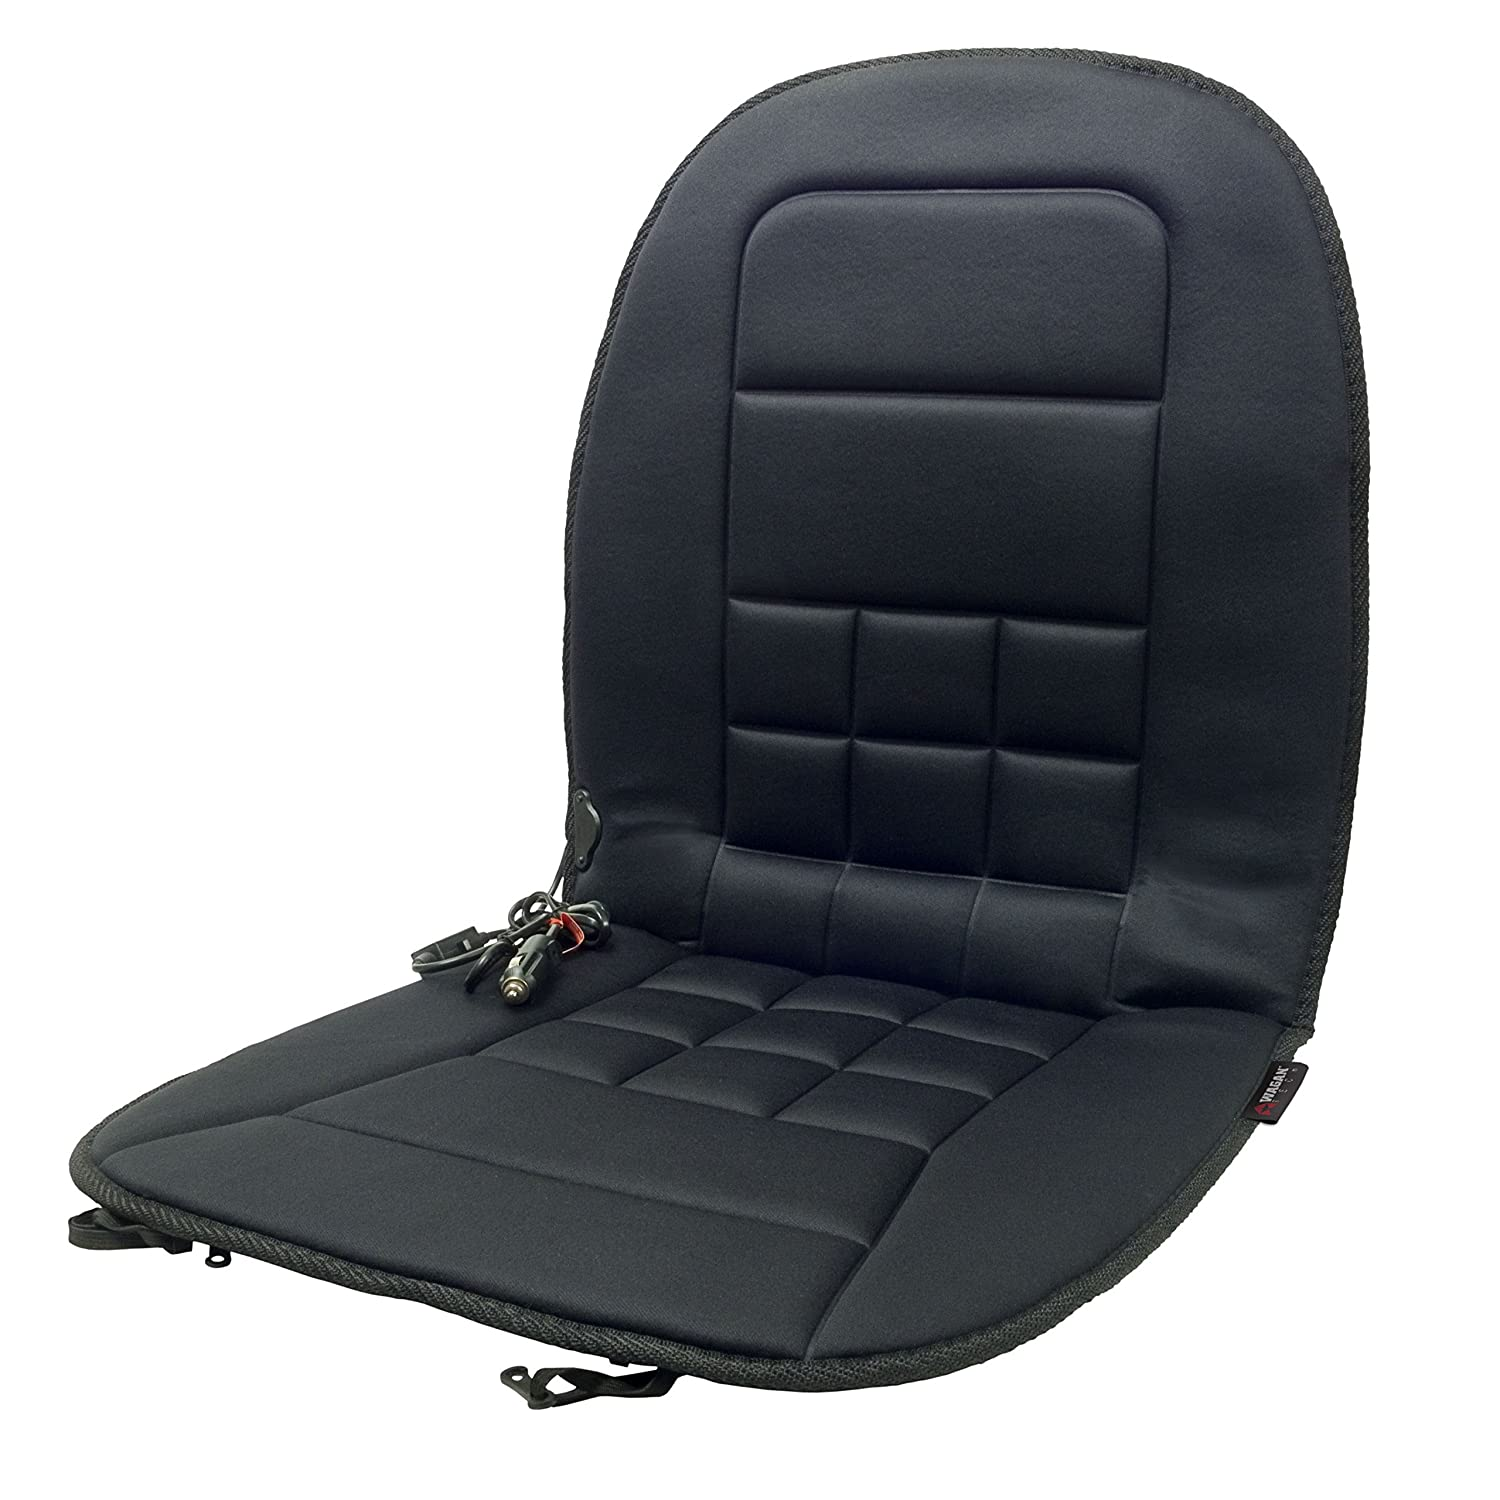 HealthMate IN9738 12V Heated Seat Cushion by Wagan